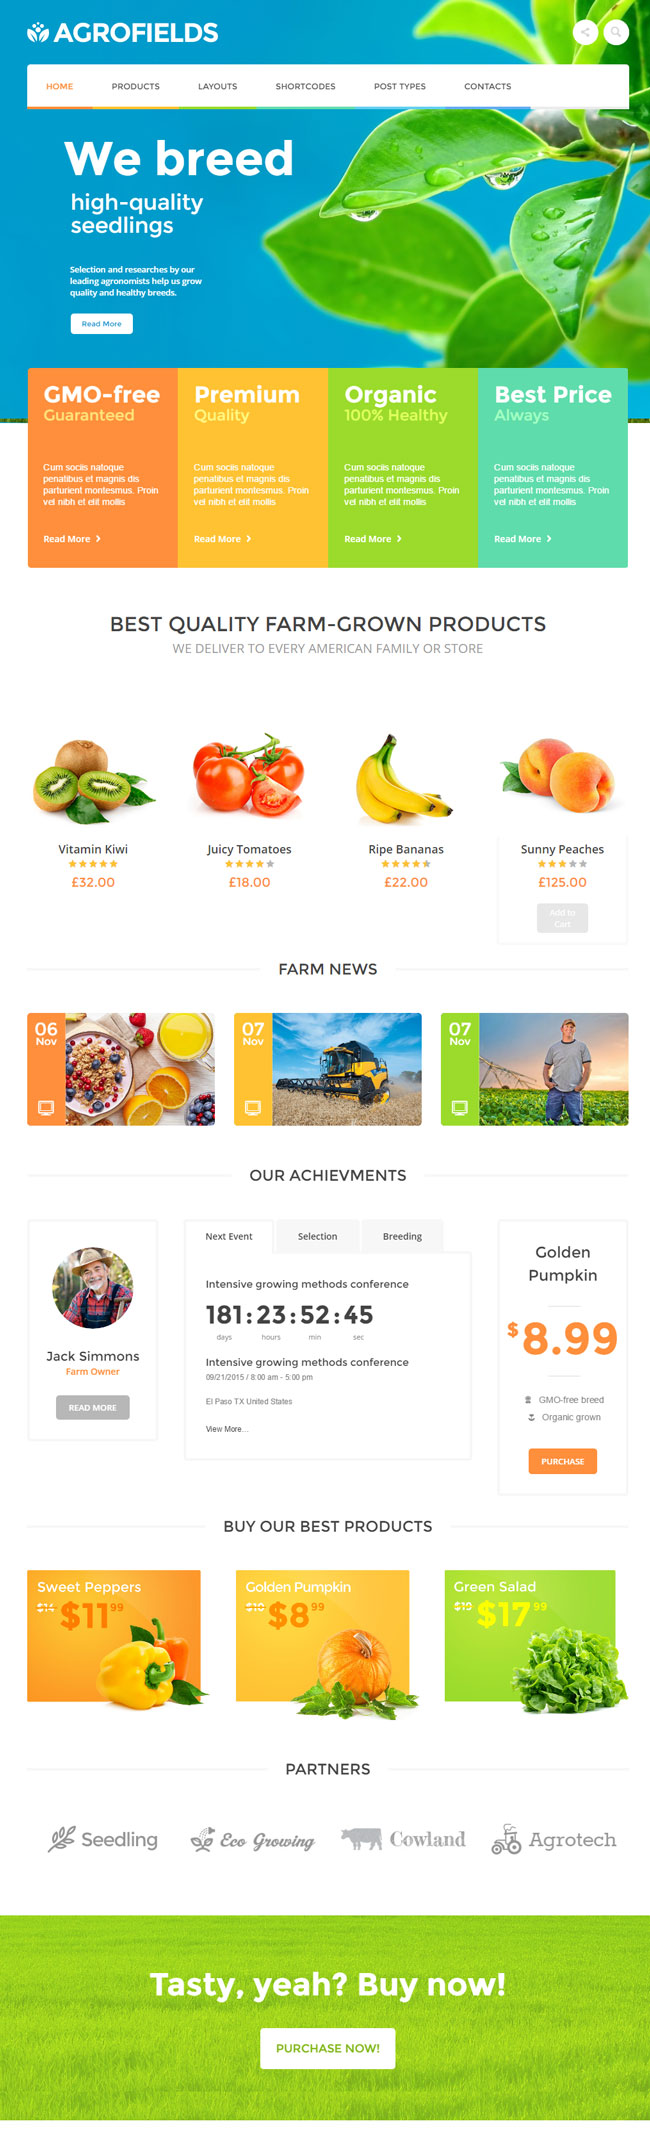 Agrofields-Food-Shop-Grocery-Market-Wordpress-Theme